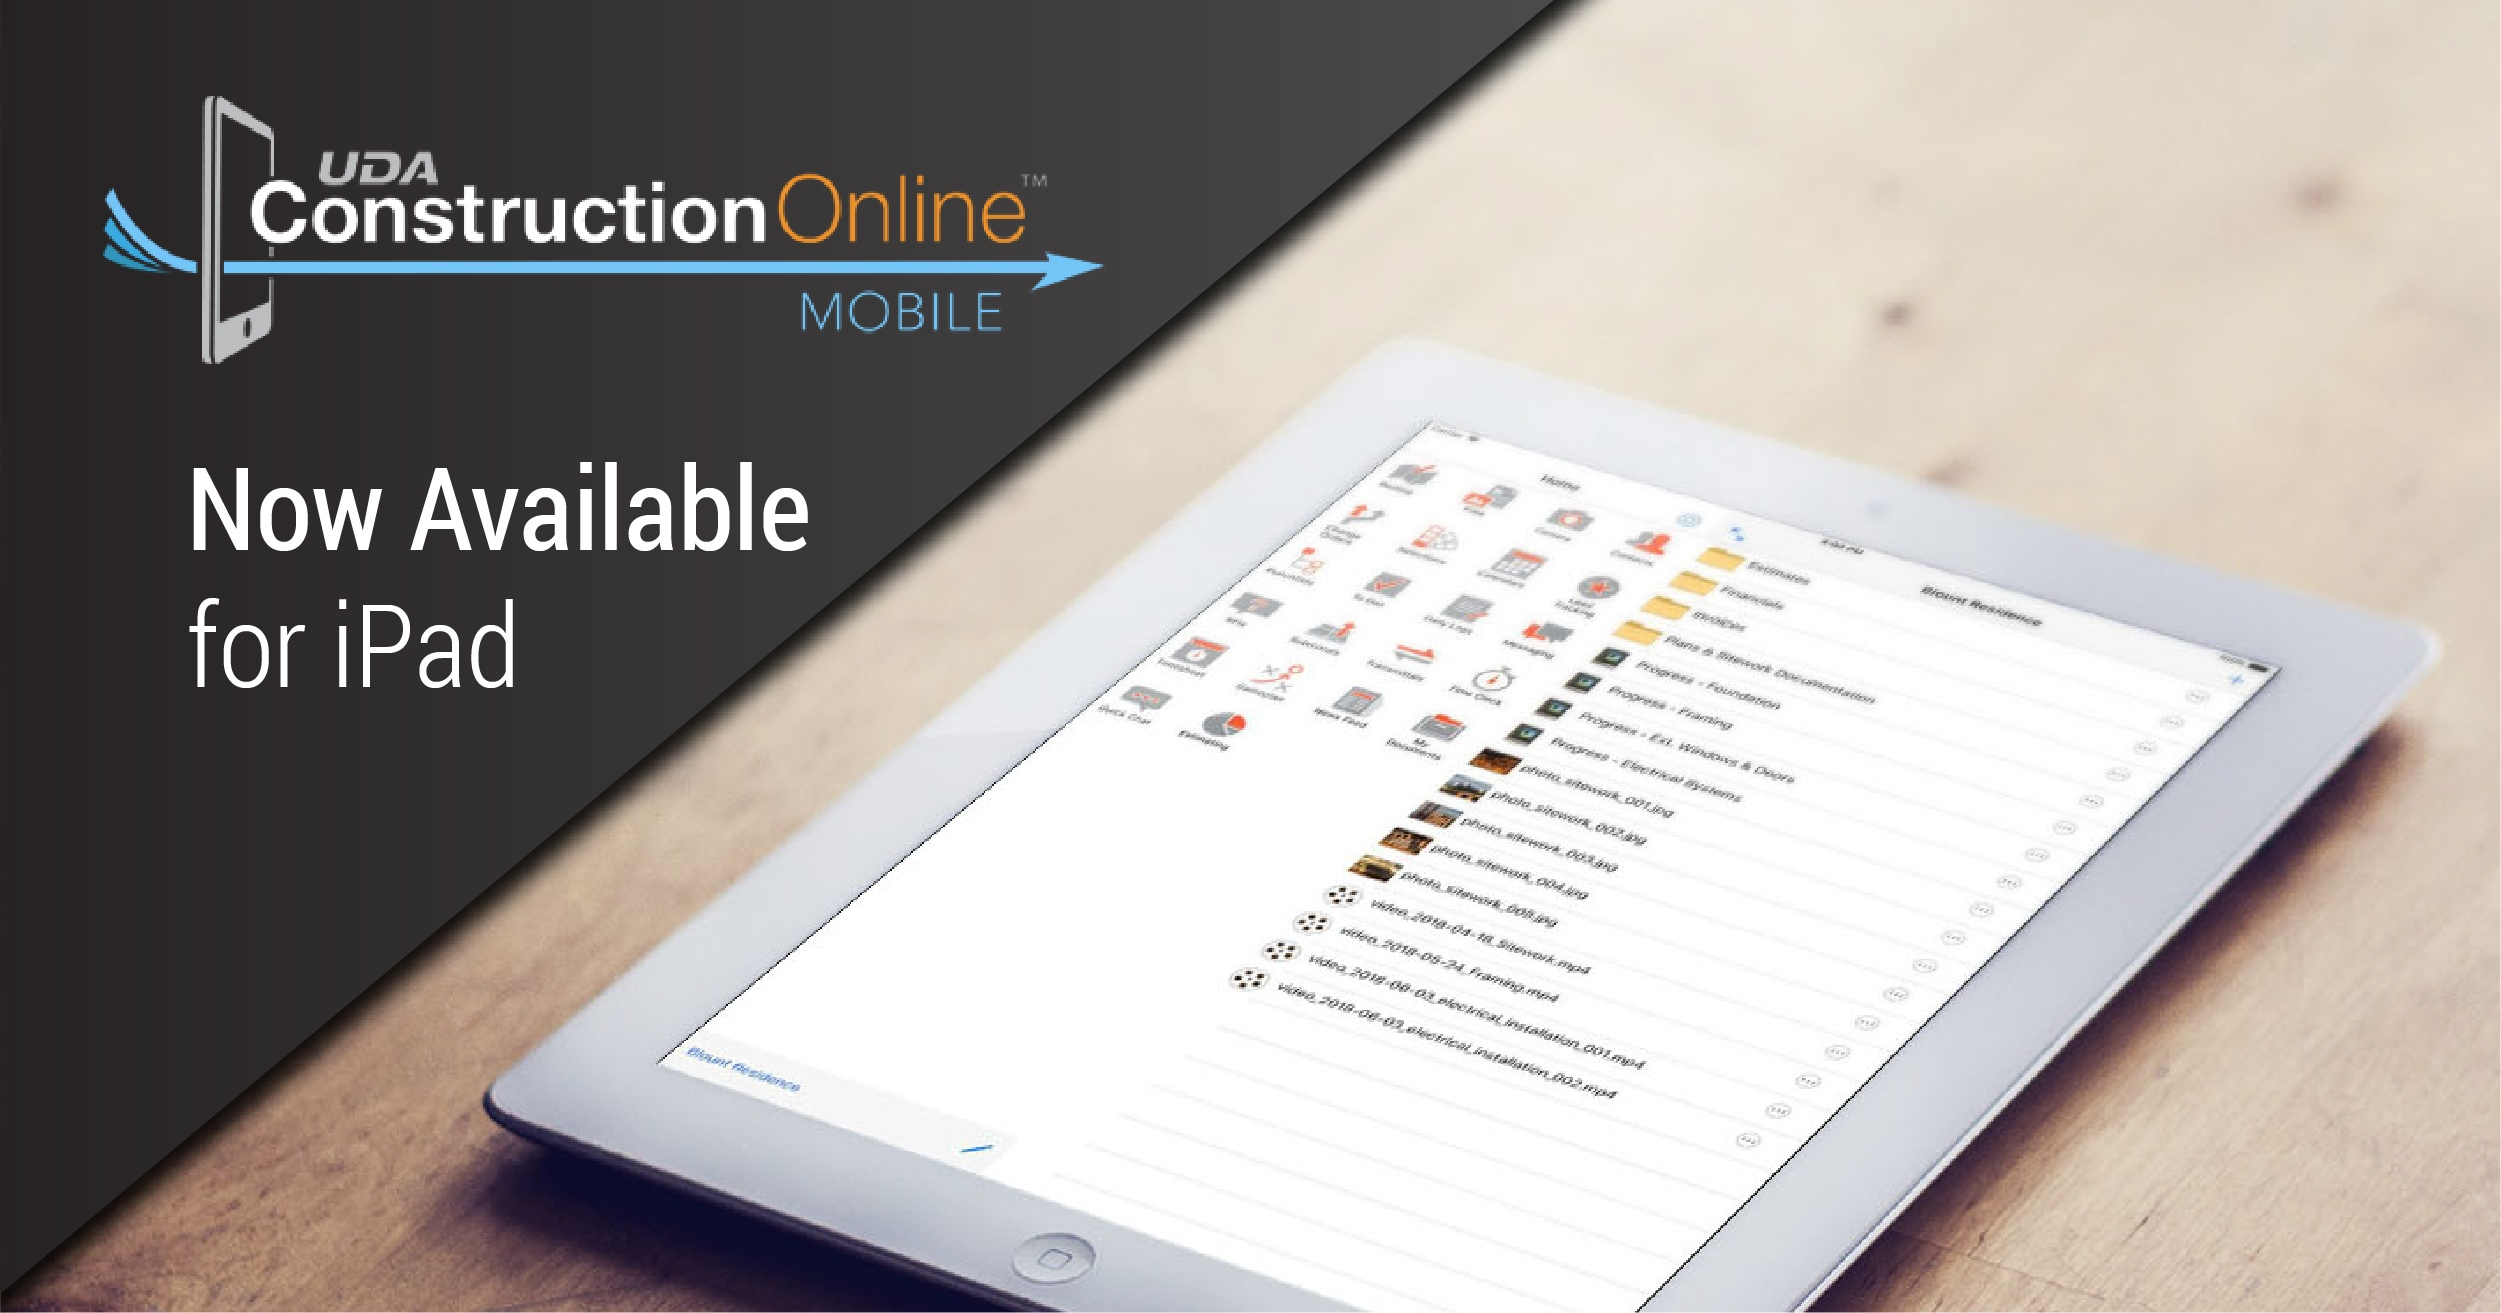 ConstructionOnline Mobile: Now Available for iPad Download